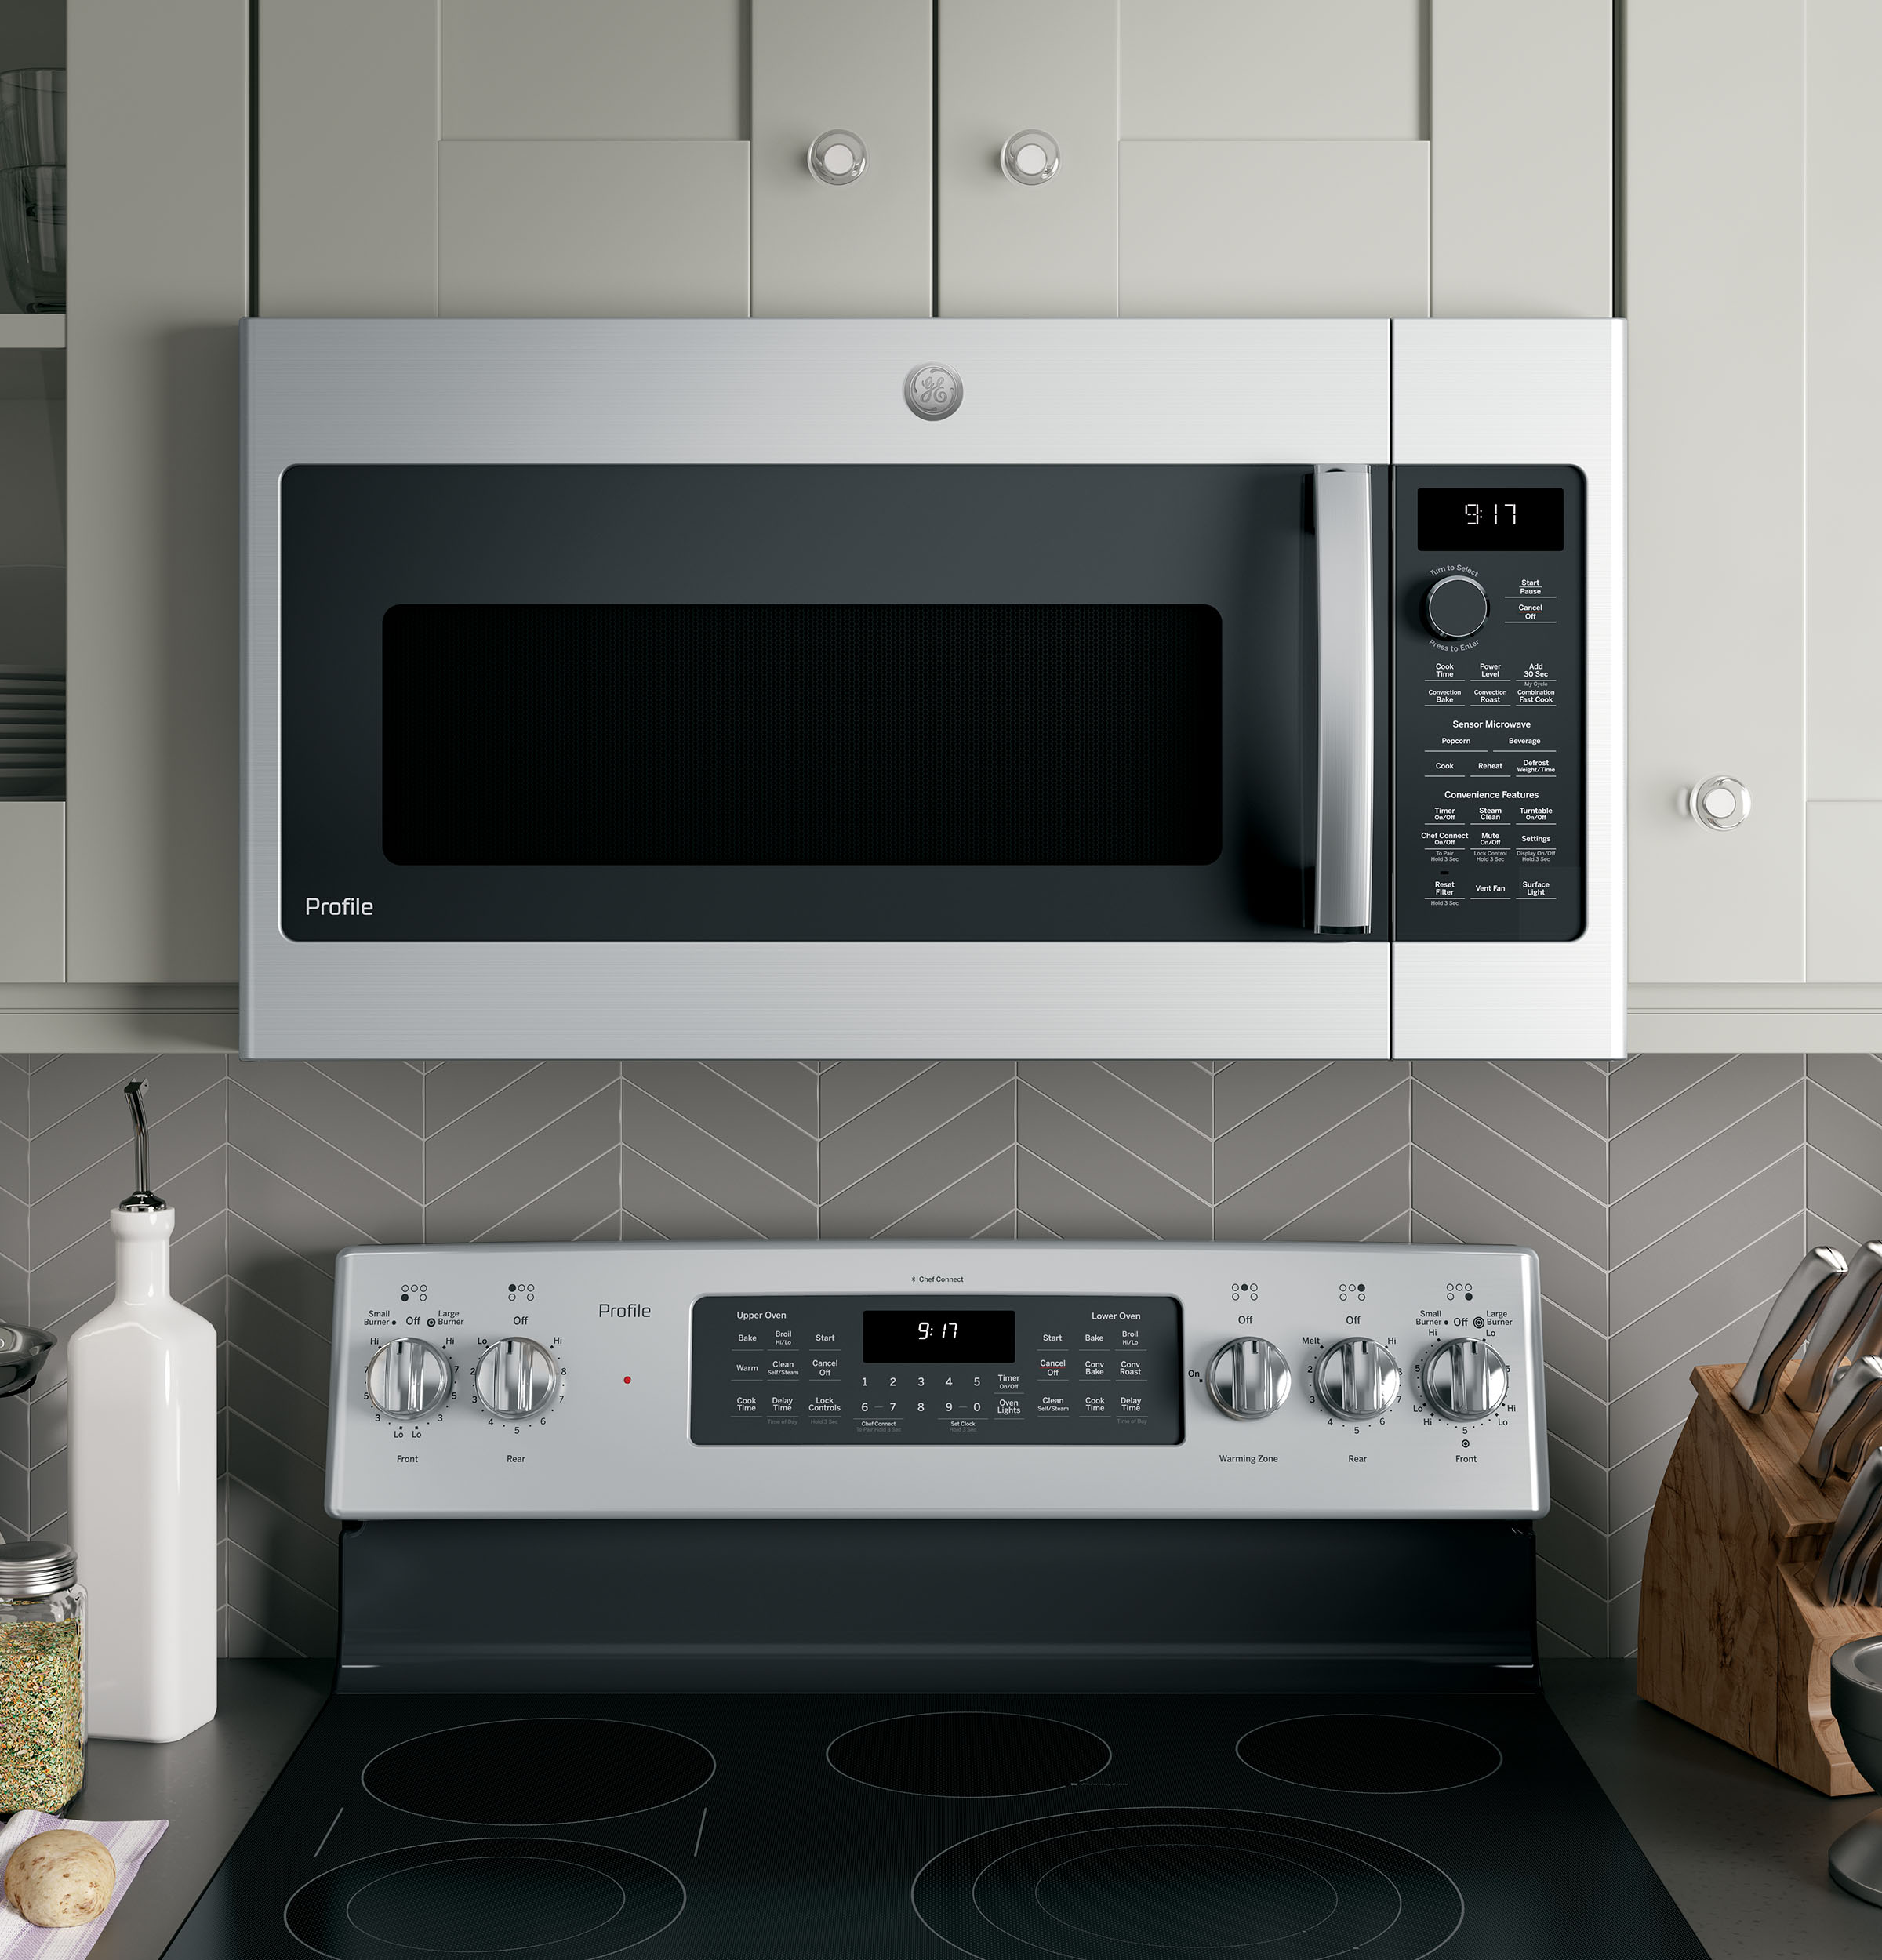 Model: PVM9179SKSS | GE Profile™ Series 1.7 Cu. Ft. Convection Over-the-Range Microwave Oven